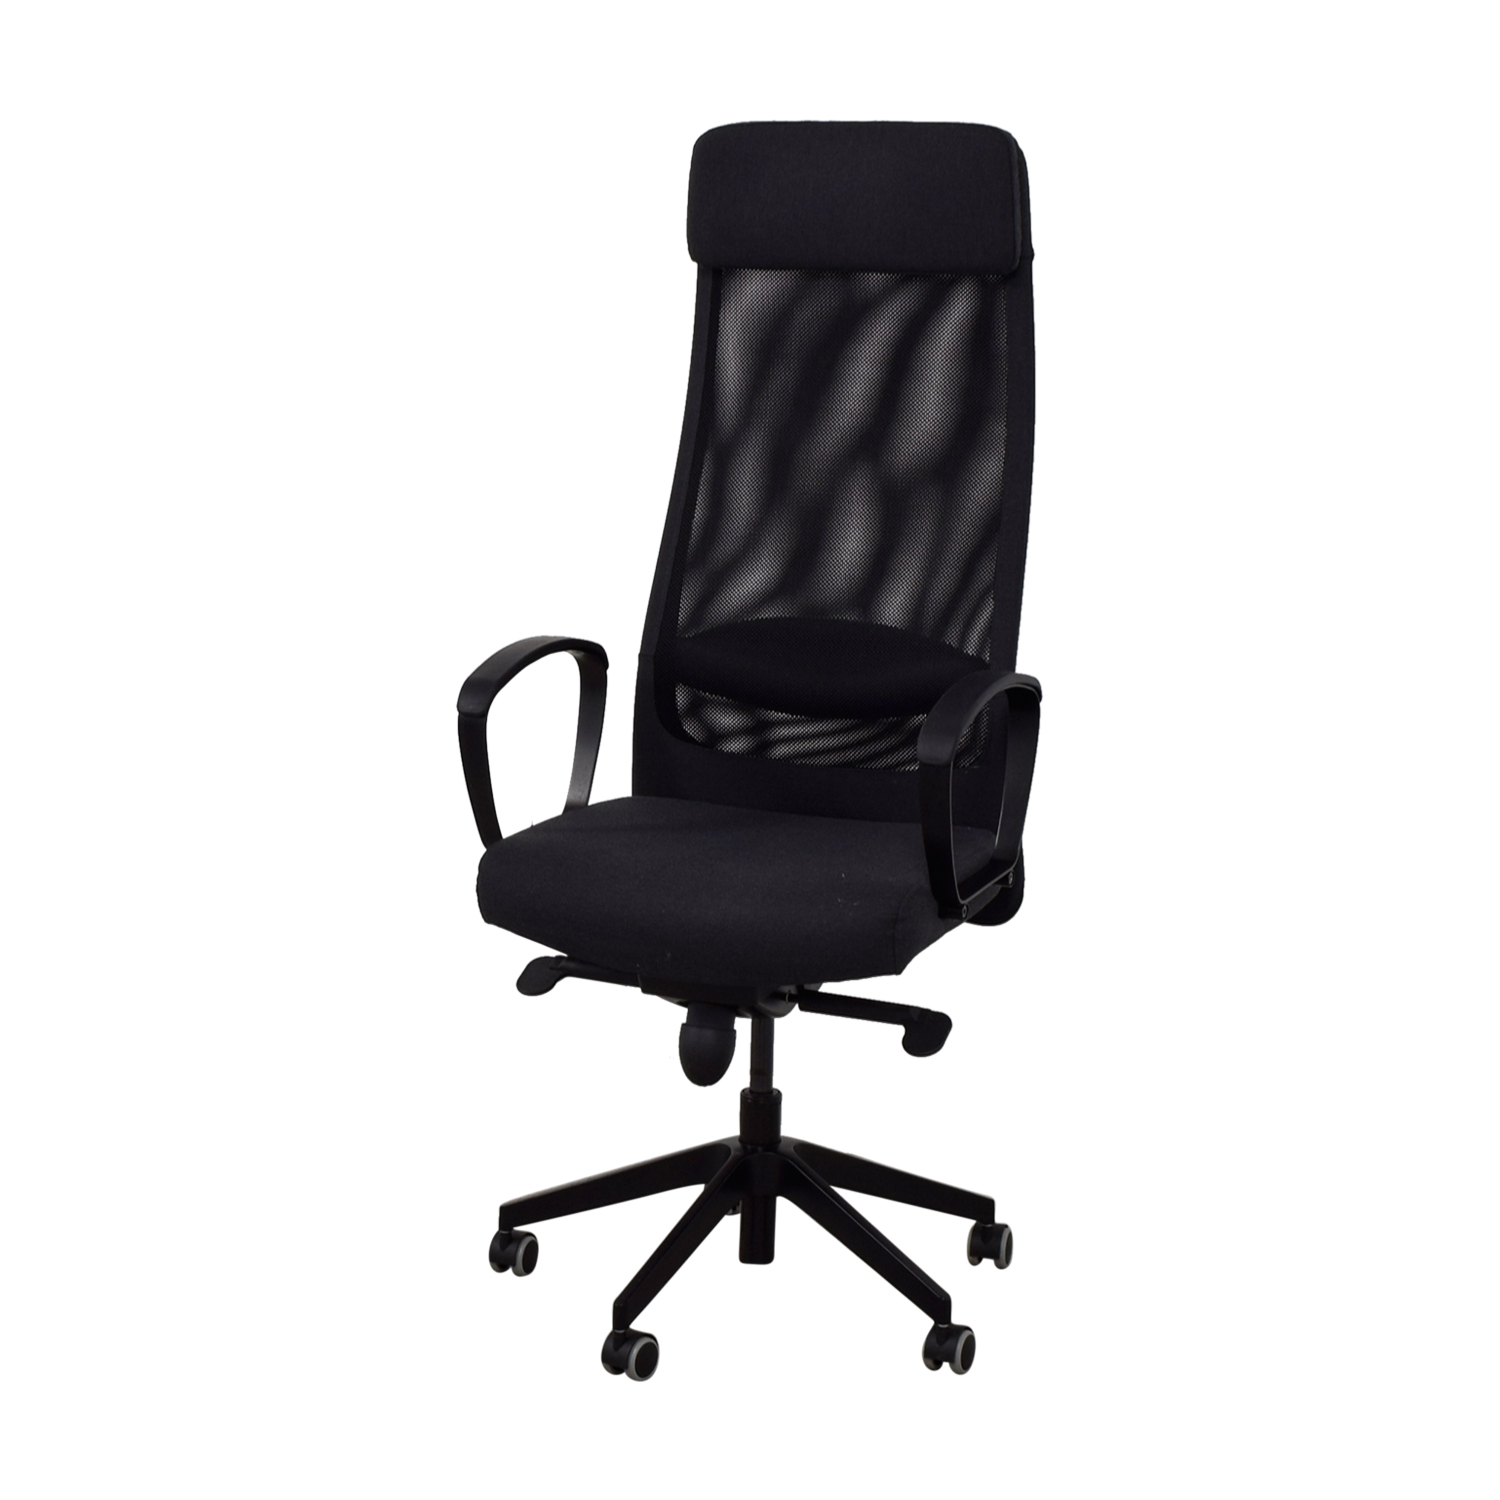 Home Chair: IKEA IKEA Black Office Chair / Chairs